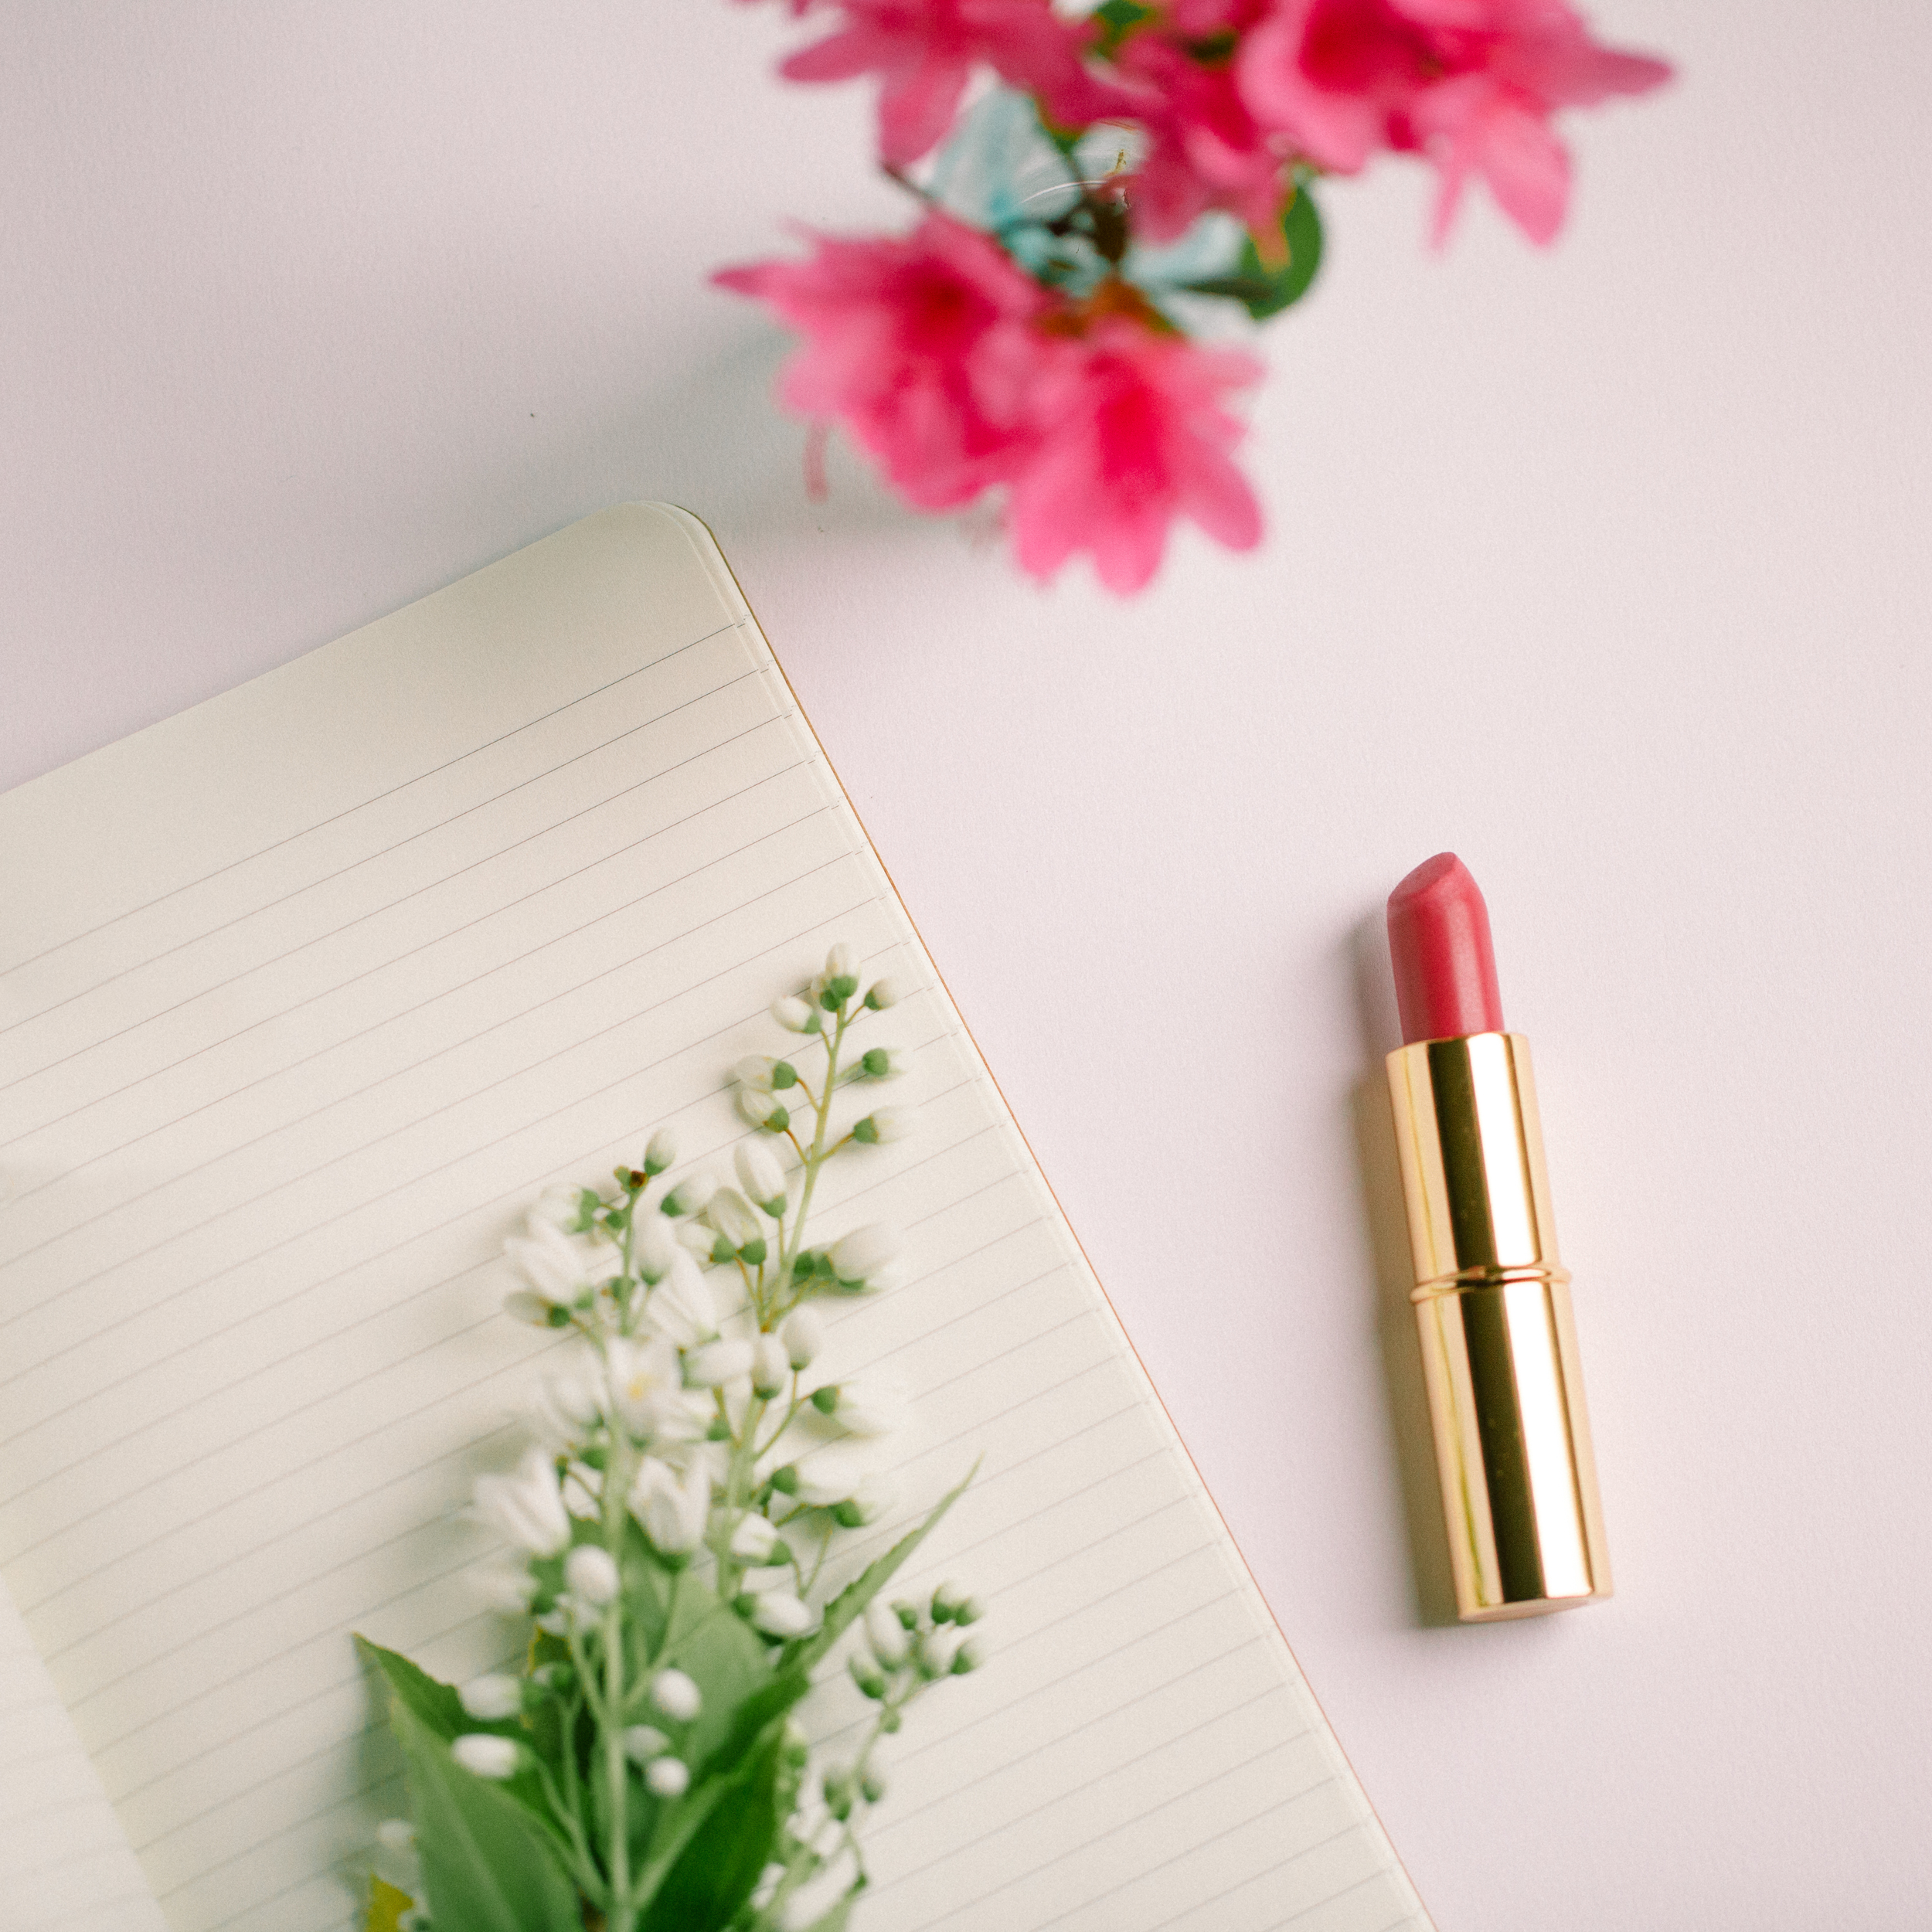 Journaling, pink lipstick. Fresh cut flowers. I love to write and express my thoughts through poetry, short stories and singing! (though I'm a little shy about that last one)..